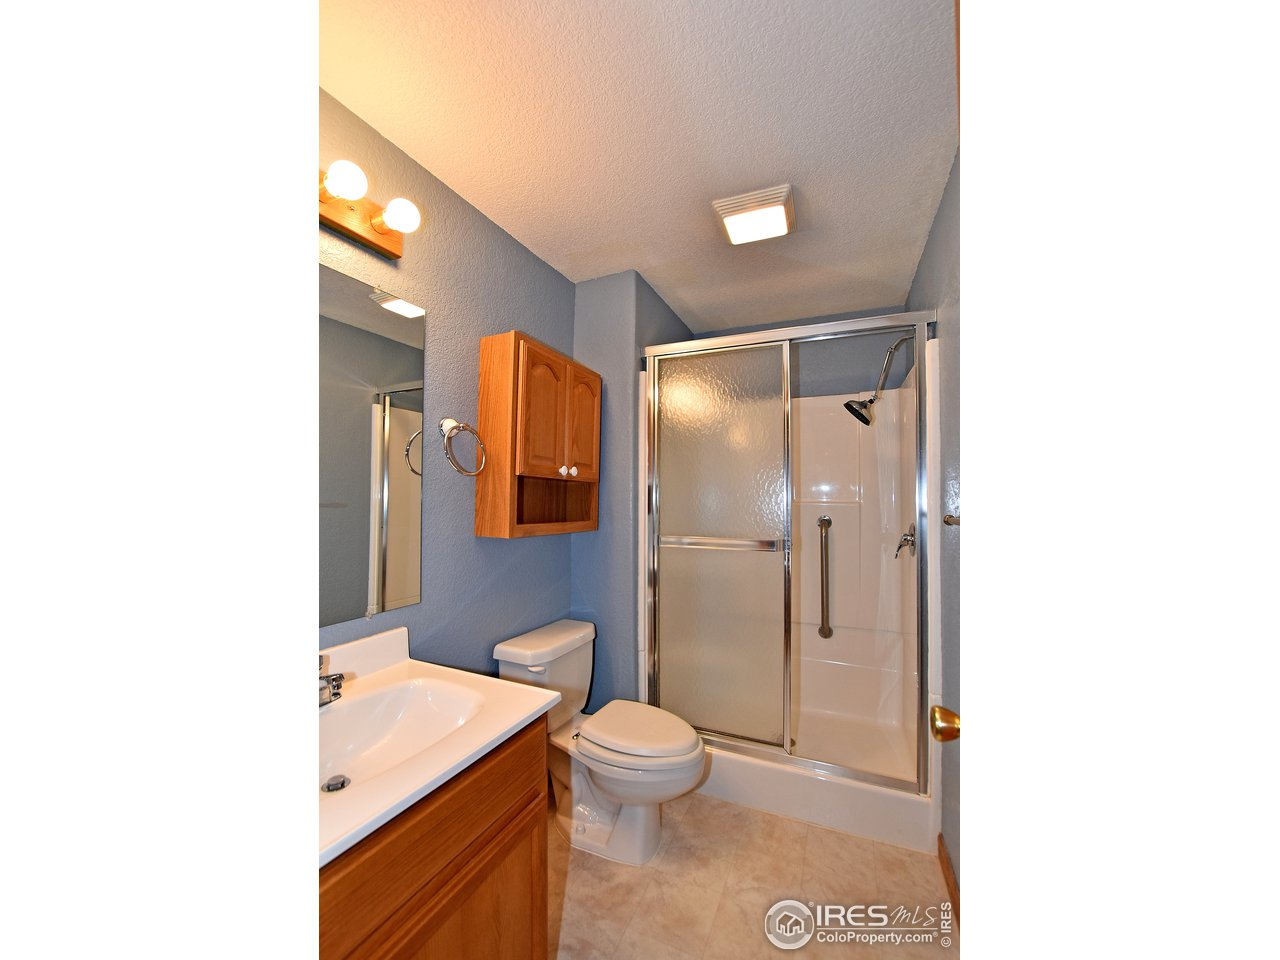 3/4 bathroom in basement